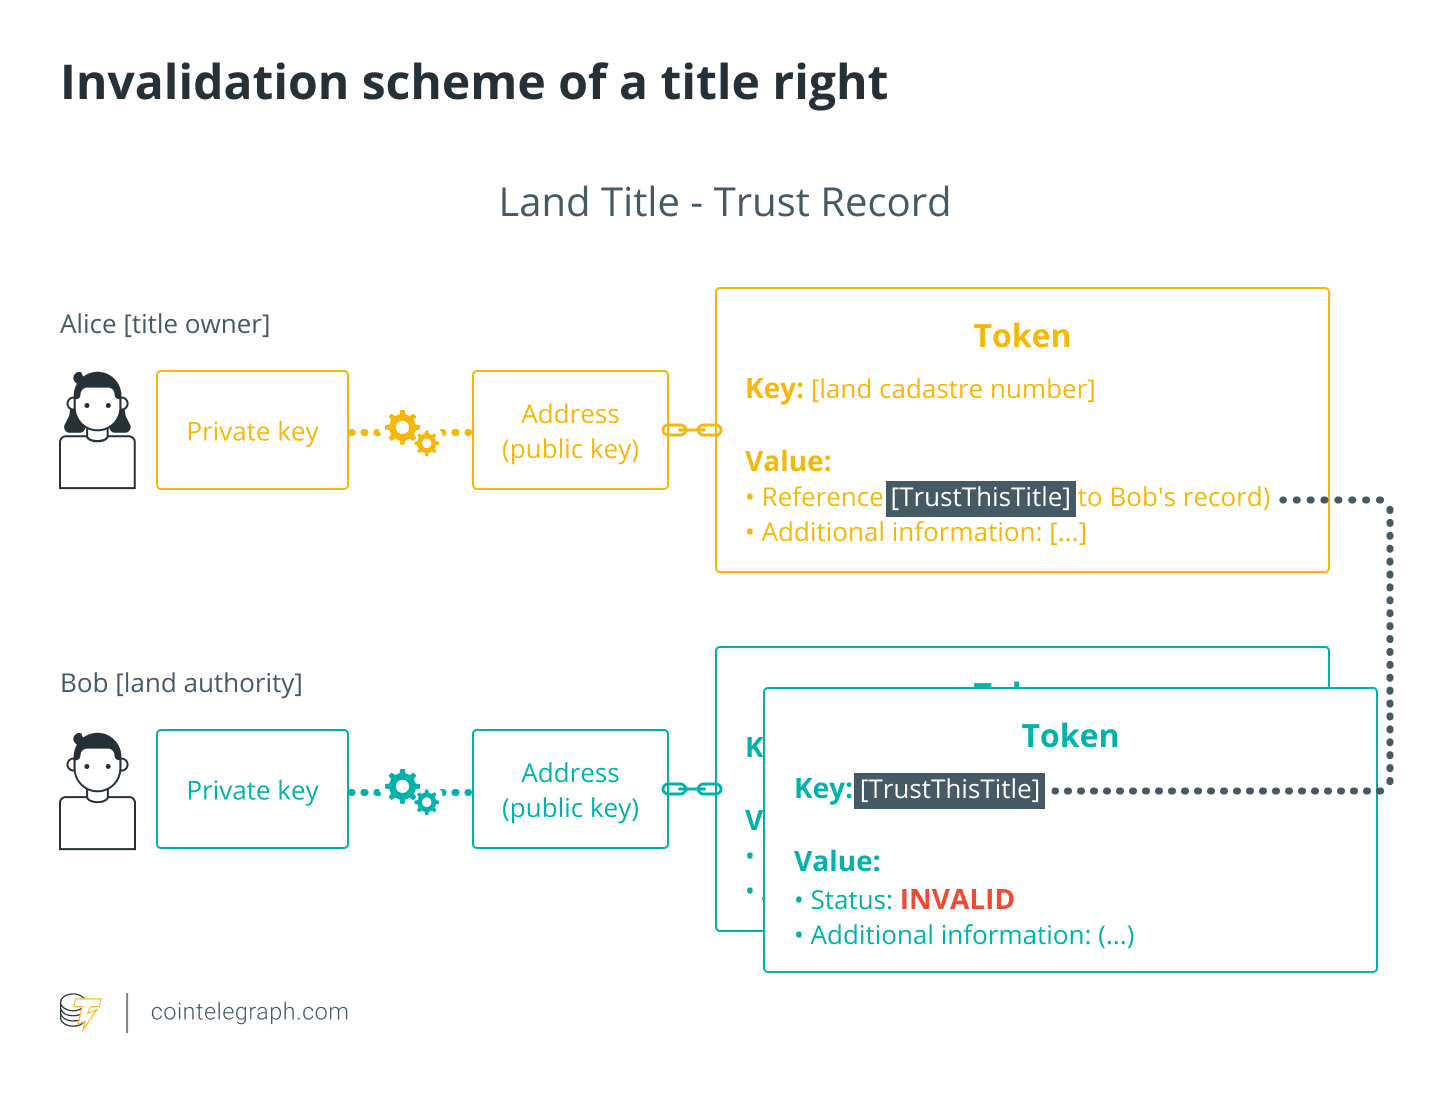 Invalidation scheme of a title right